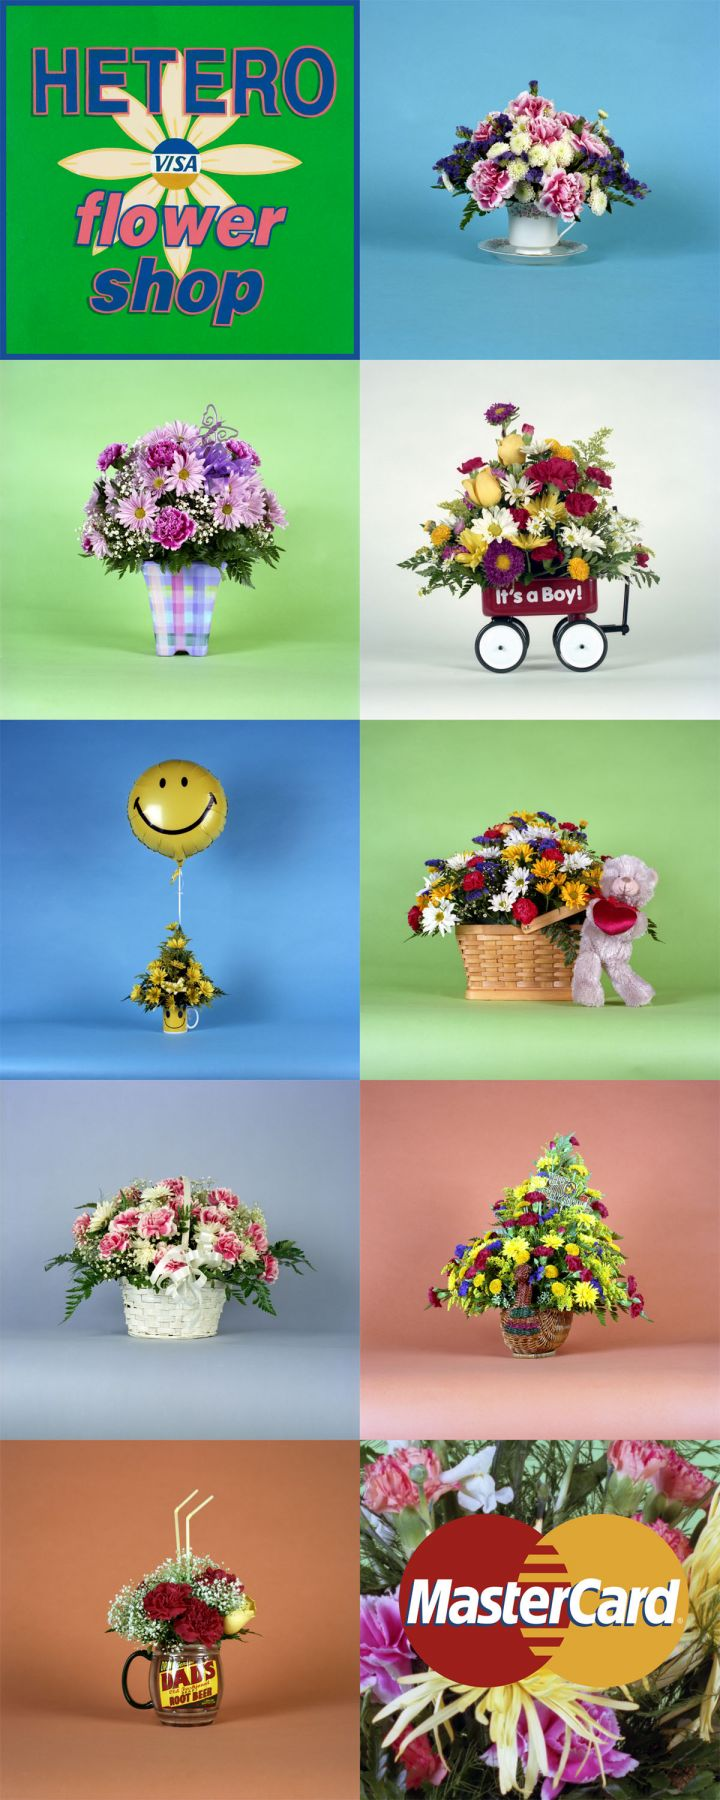 10 photos of flowers with visa and master-card logos by john waters